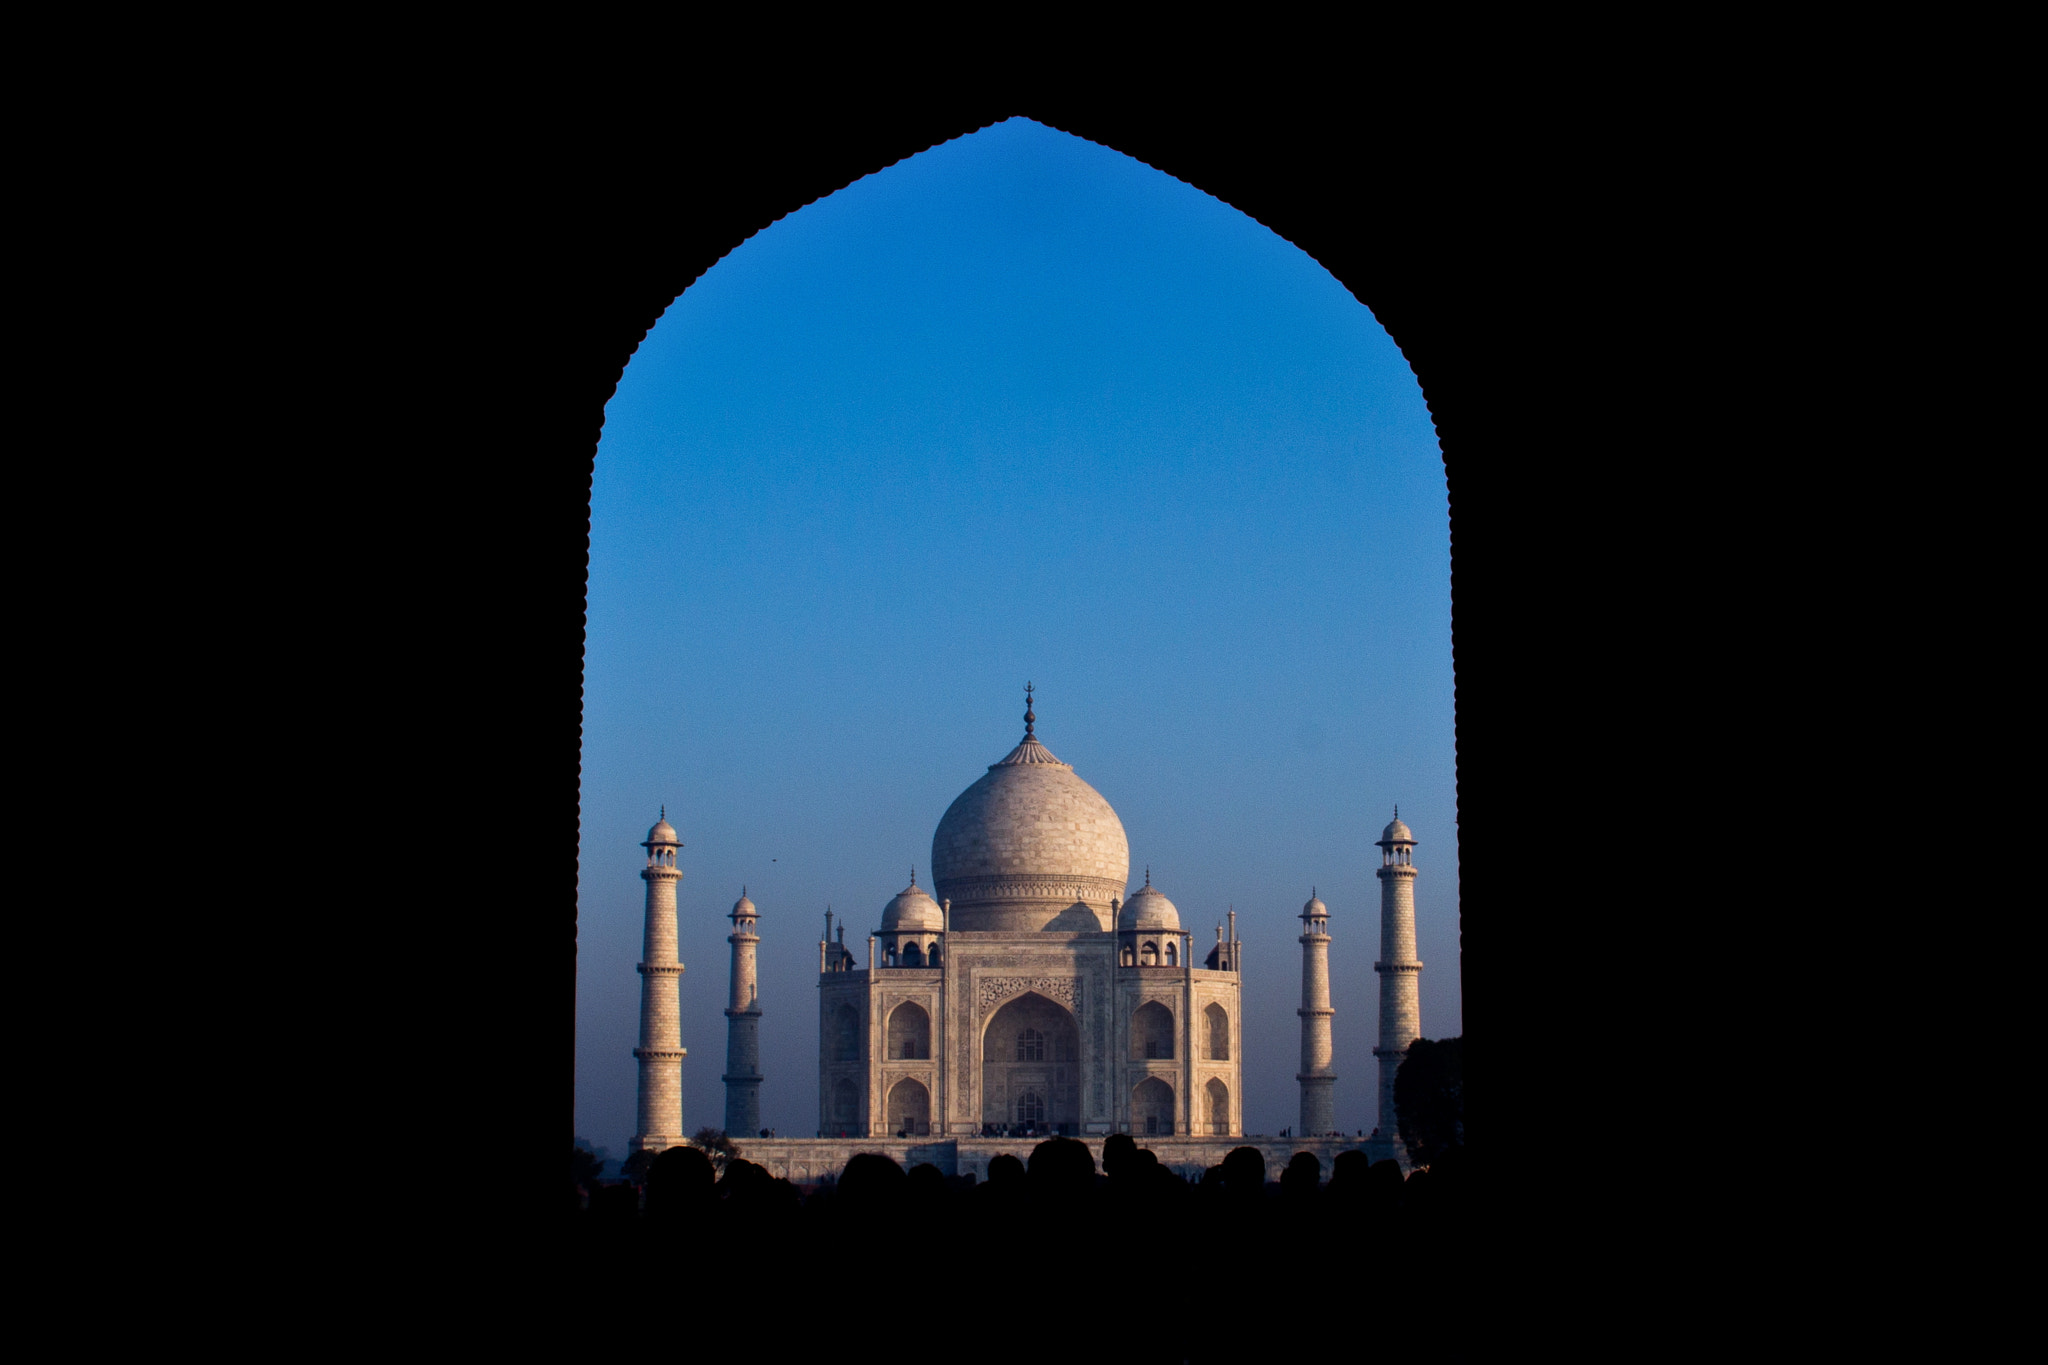 Photograph Taj Mahal by Manish Ray on 500px